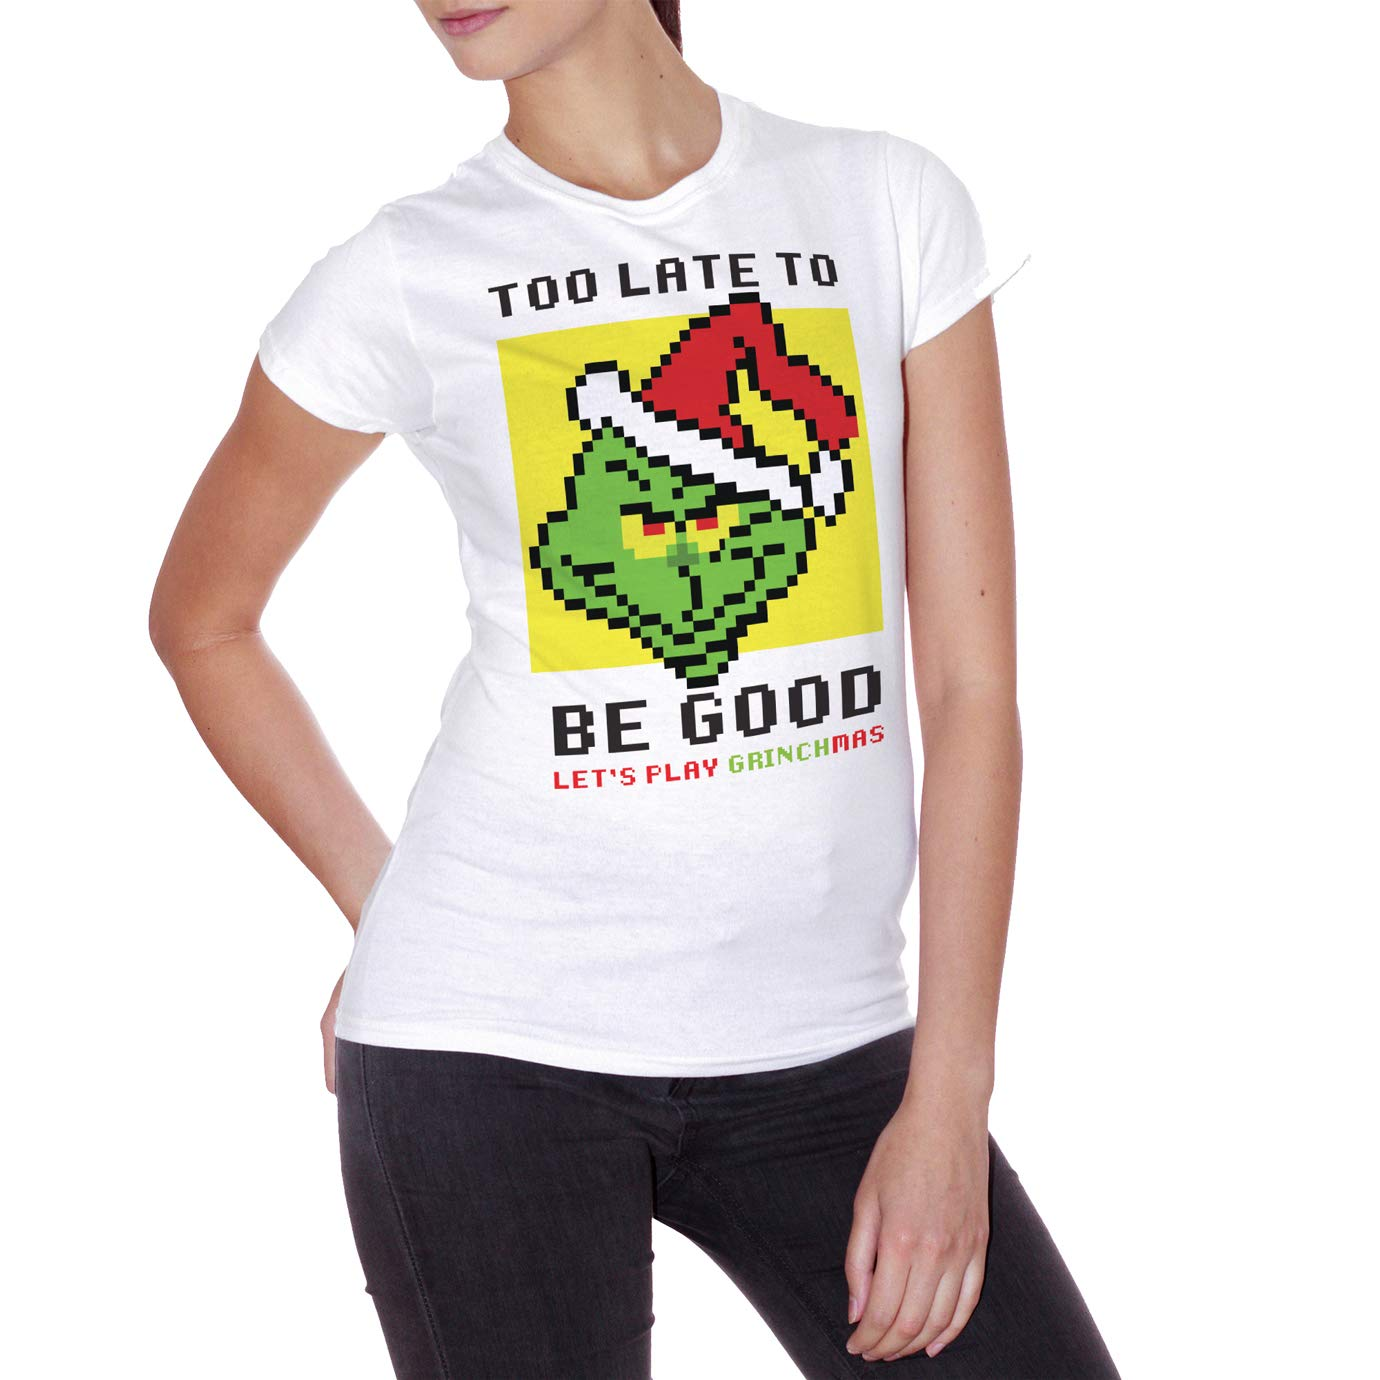 Grafica Simpatica retr/ò Vintage in 8bit Lets Play Grinchmas T-Shirt Grinch Pixel Choose ur Color Idea Regalo di Natale